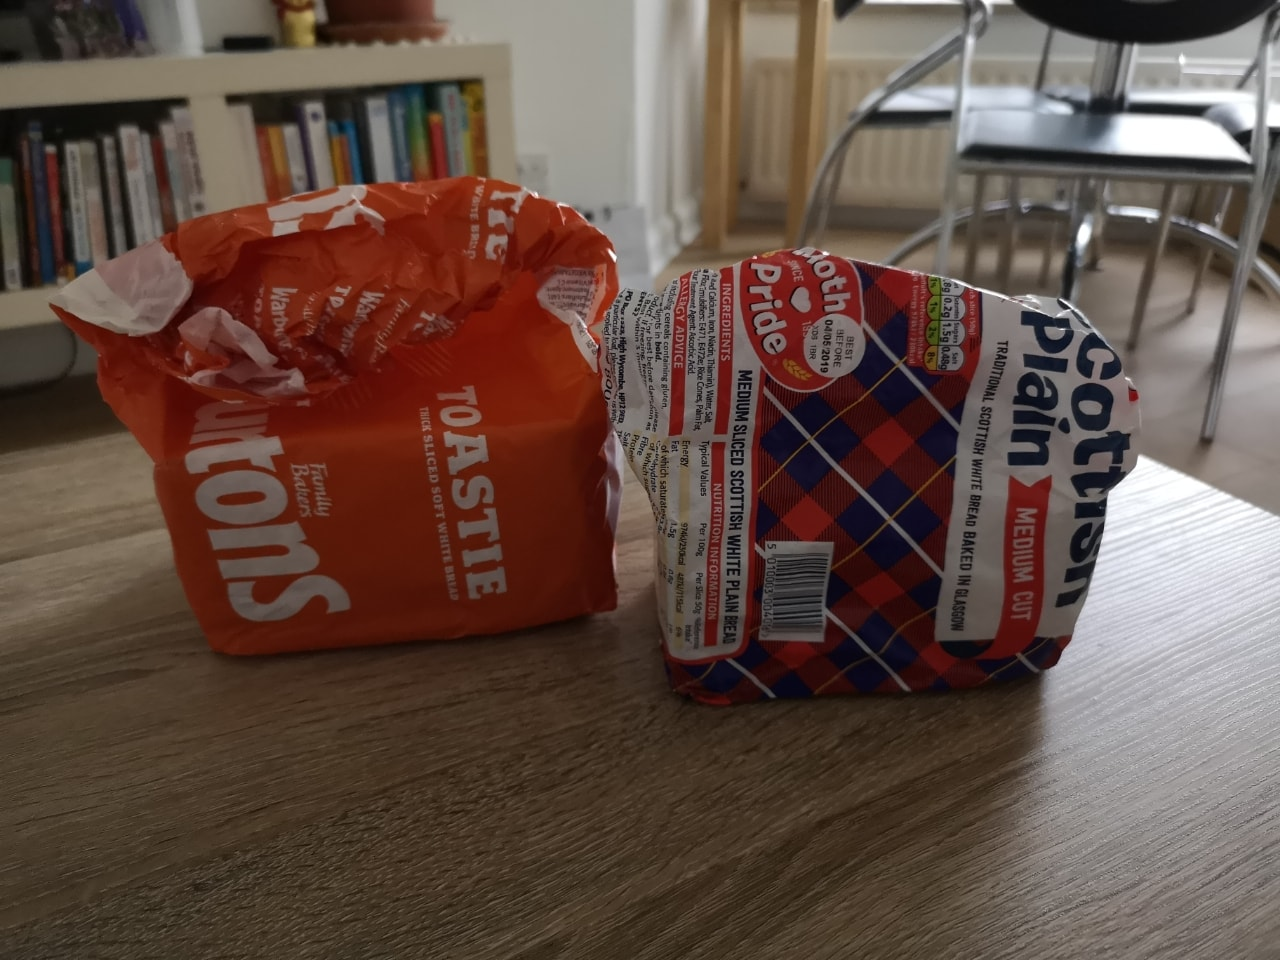 2 bags of 1/2 opened white bread